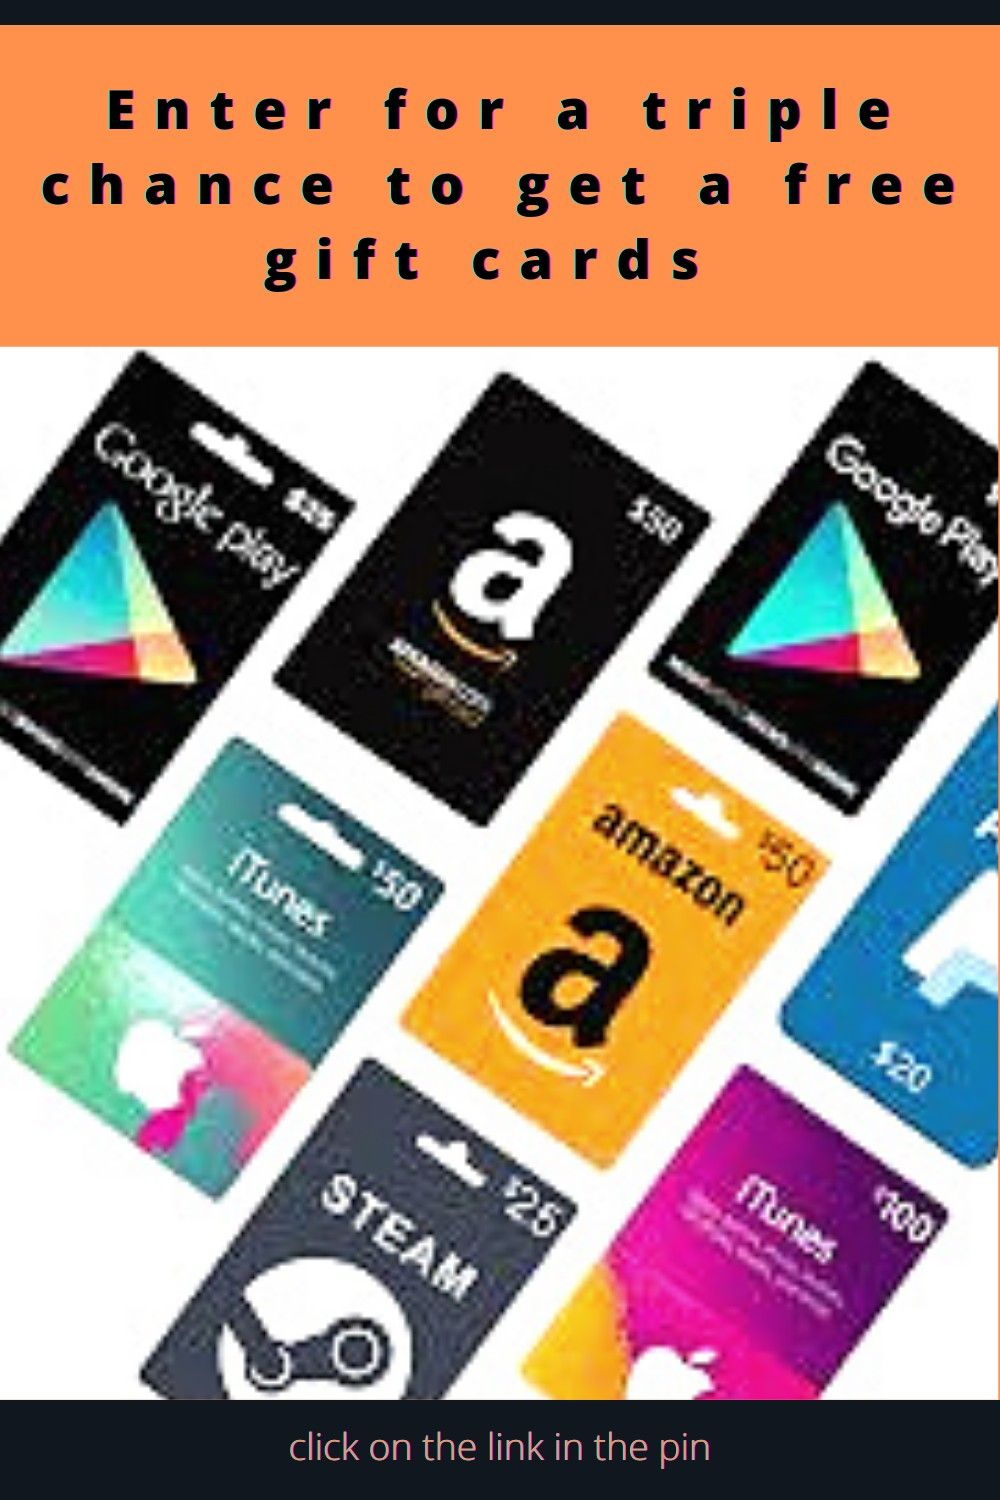 Sweepstake Gift Card In 2021 Google Play Gift Card Roblox Gifts Paypal Gift Card